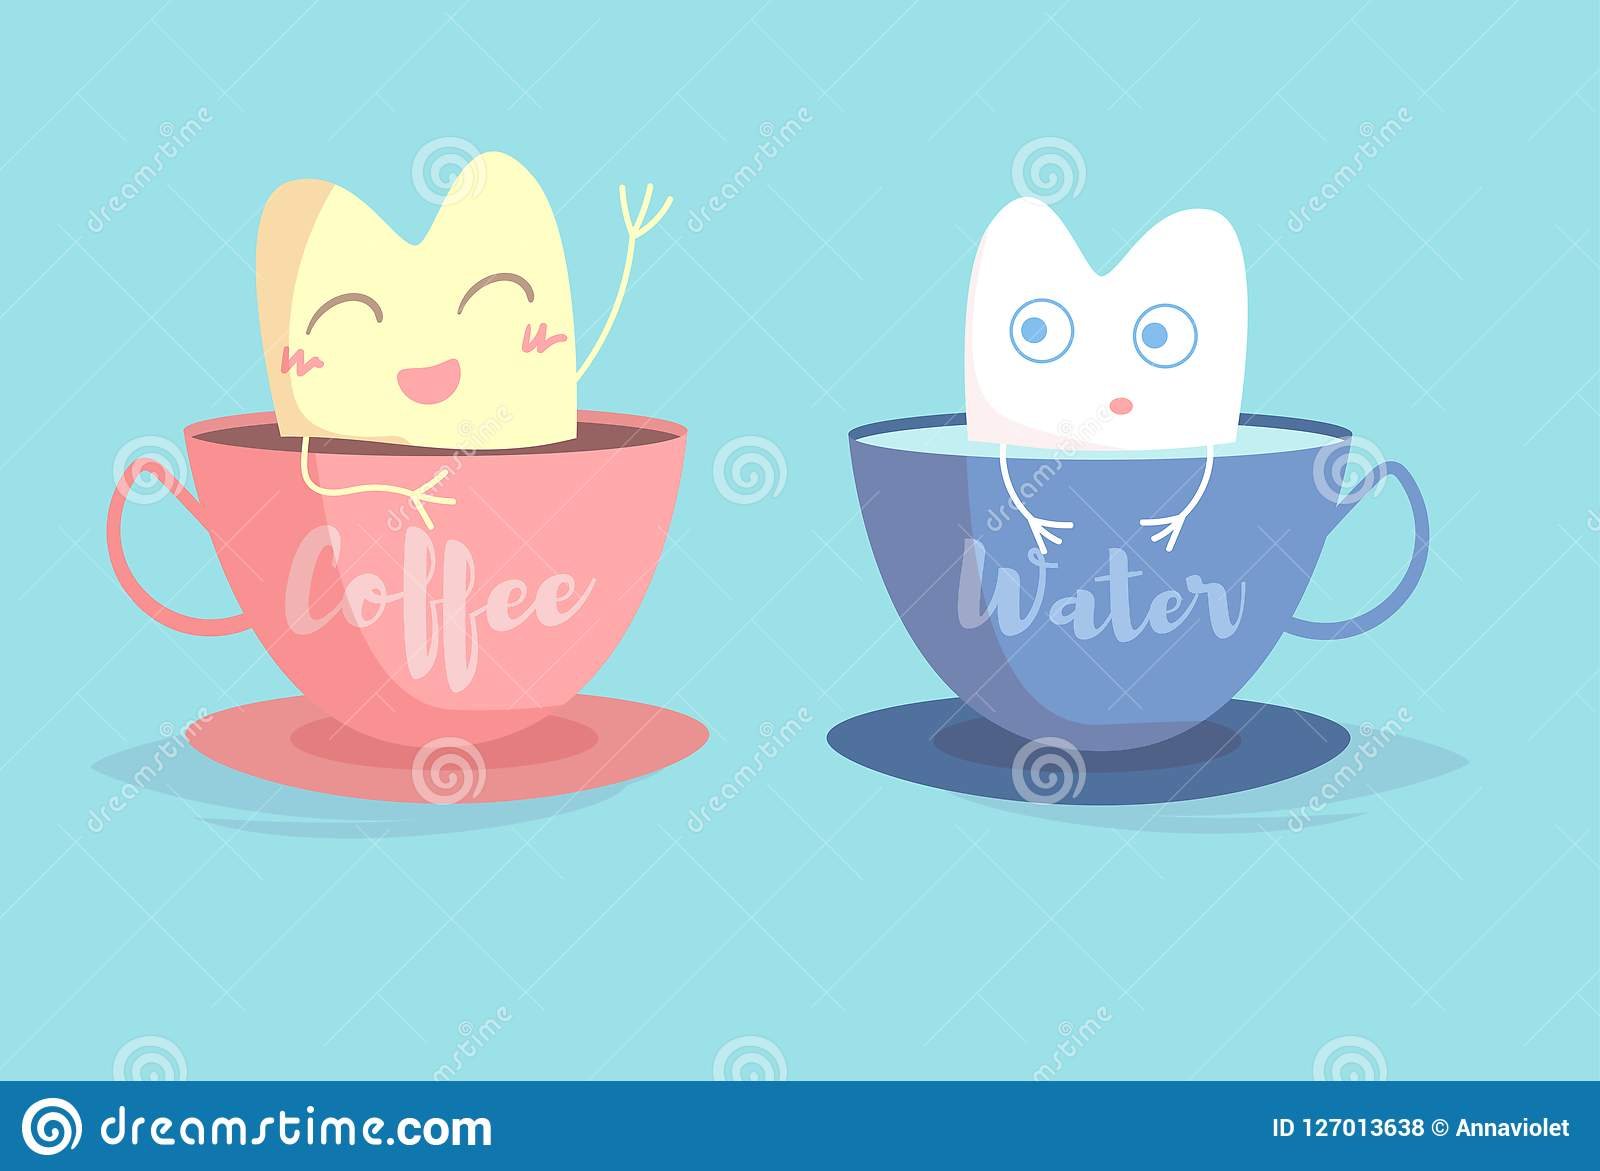 Yellow tooth in Cup of coffee, white tooth in Cup of water Vector. Cartoon.